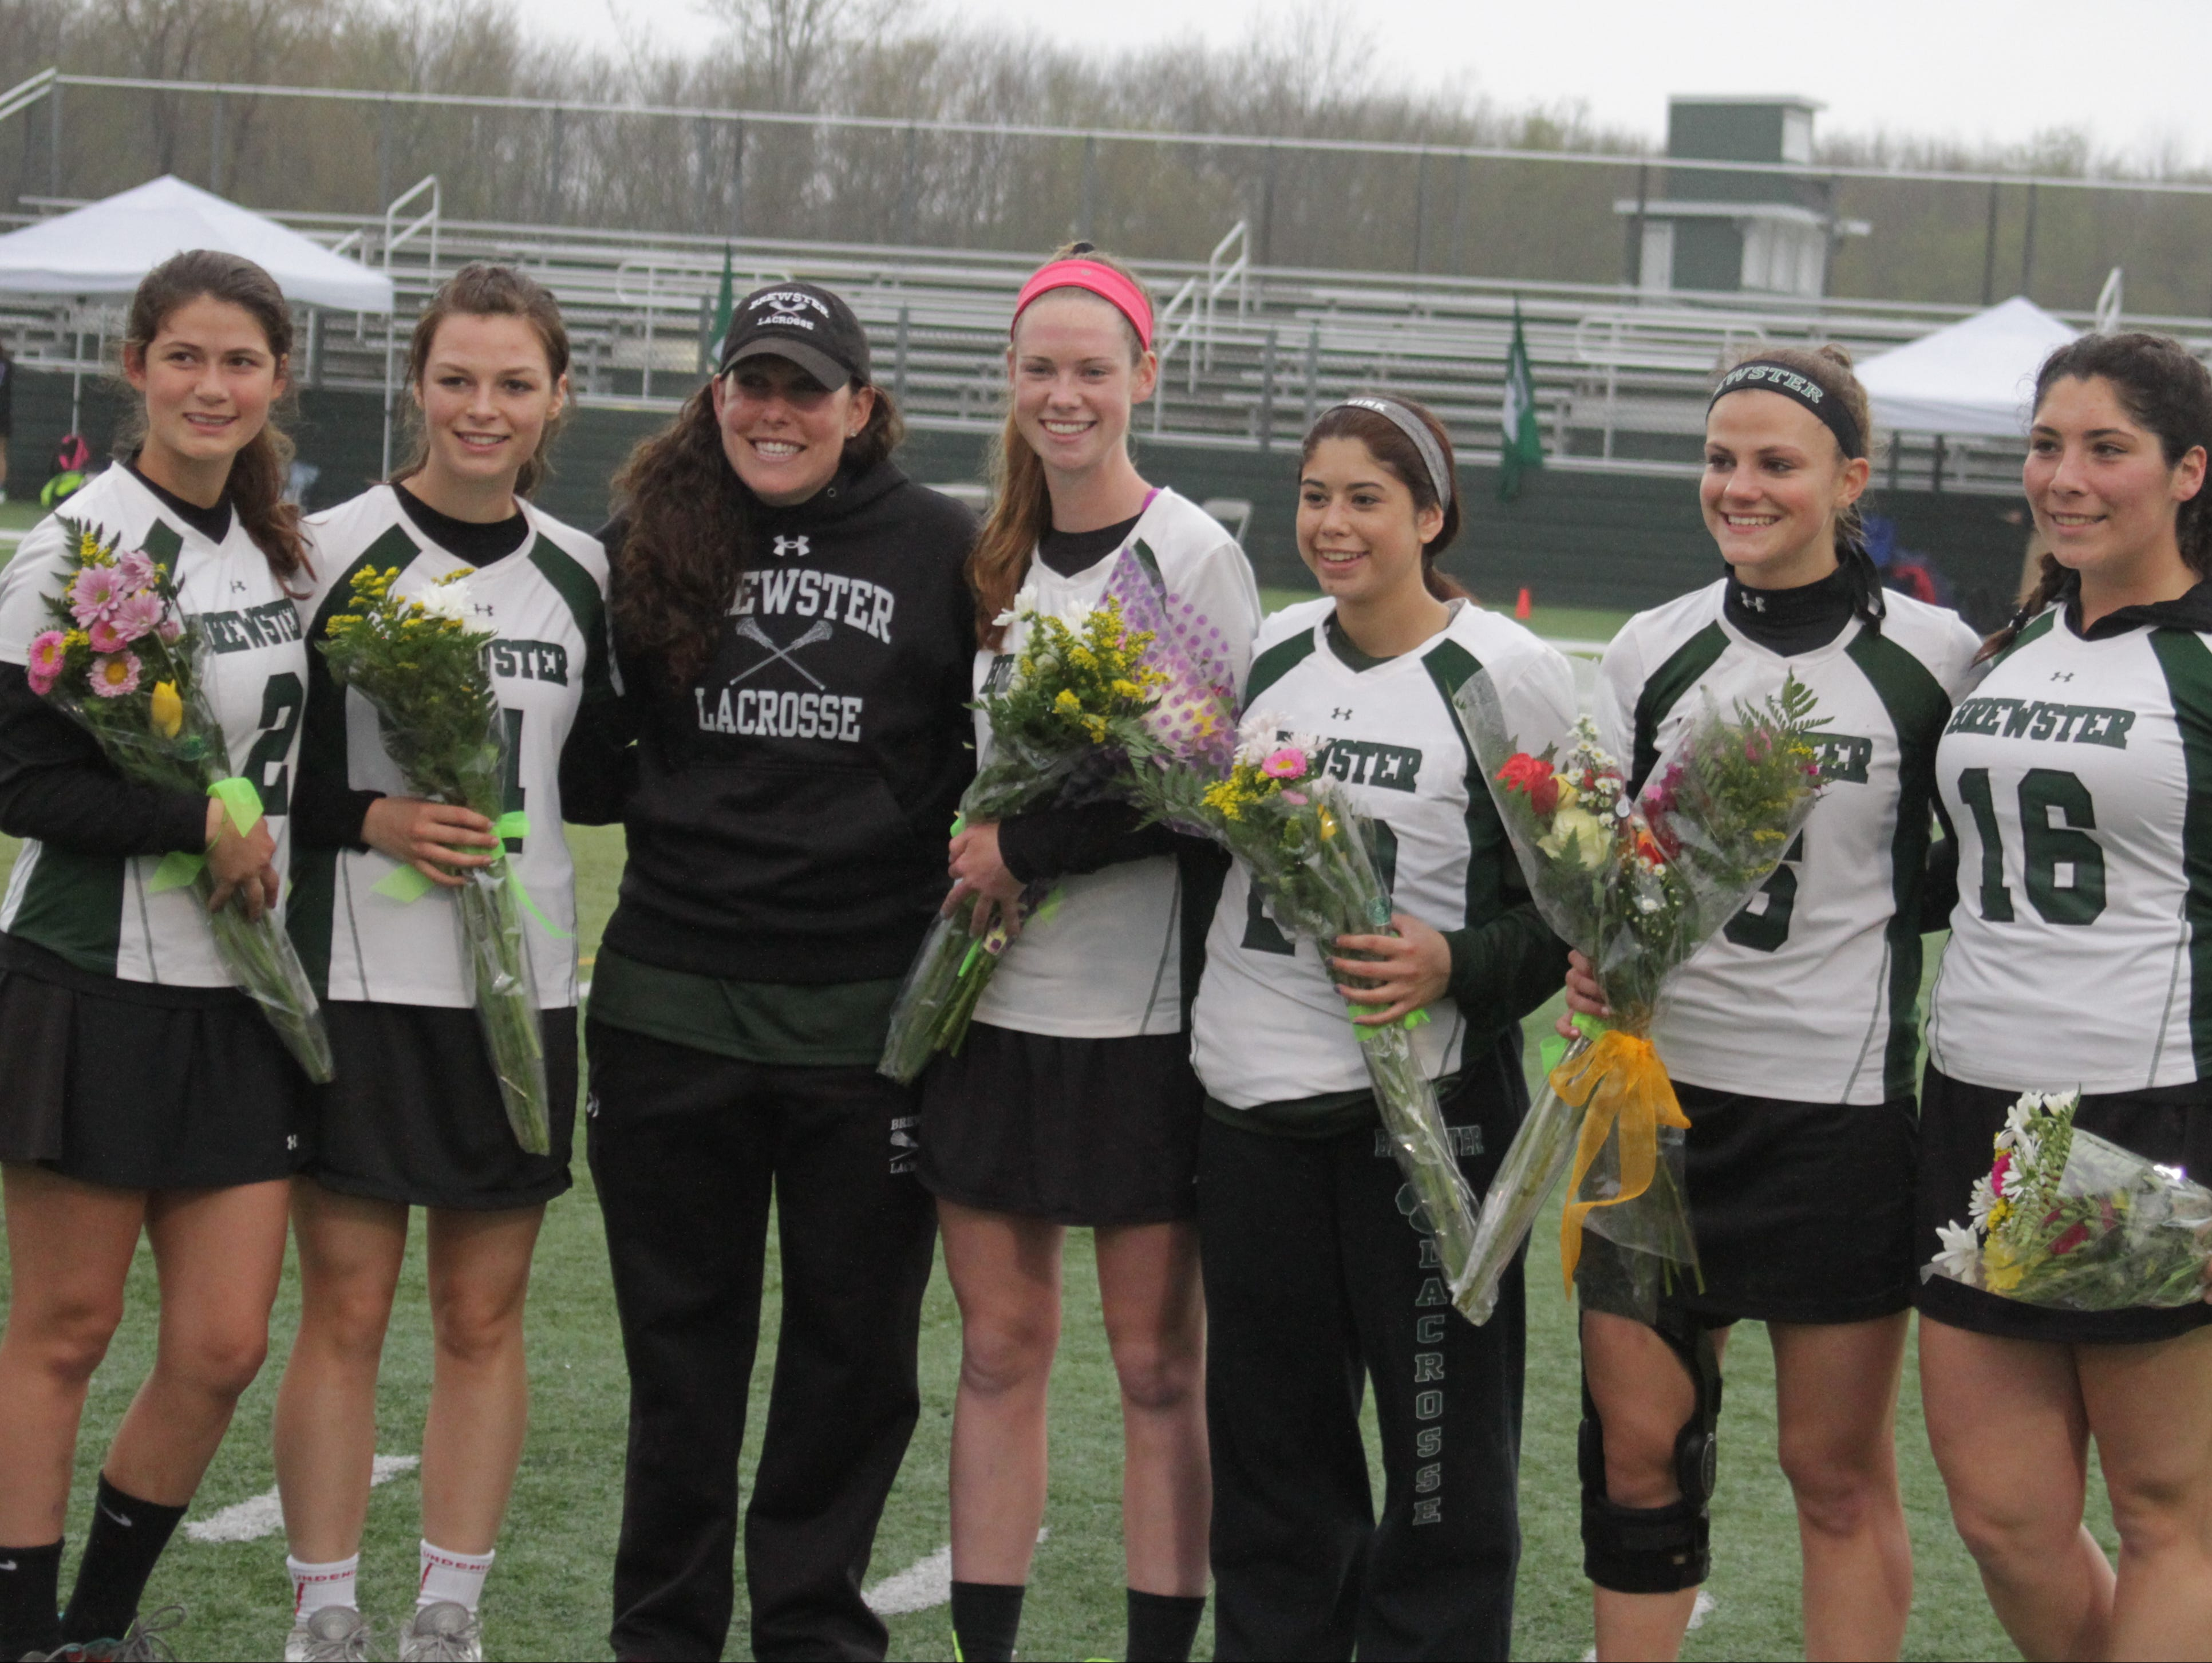 Brewster's six seniors pose after the Senior Day ceremony before a game against John Jay at Brewster on Friday, May 6th, 2016. From left: Emma Lambert, Ailish Erickson, head coach Sara DiDio, Kathleen Regan, Danielle Minella, Mary Kate Lonegan and Taylor Doria.